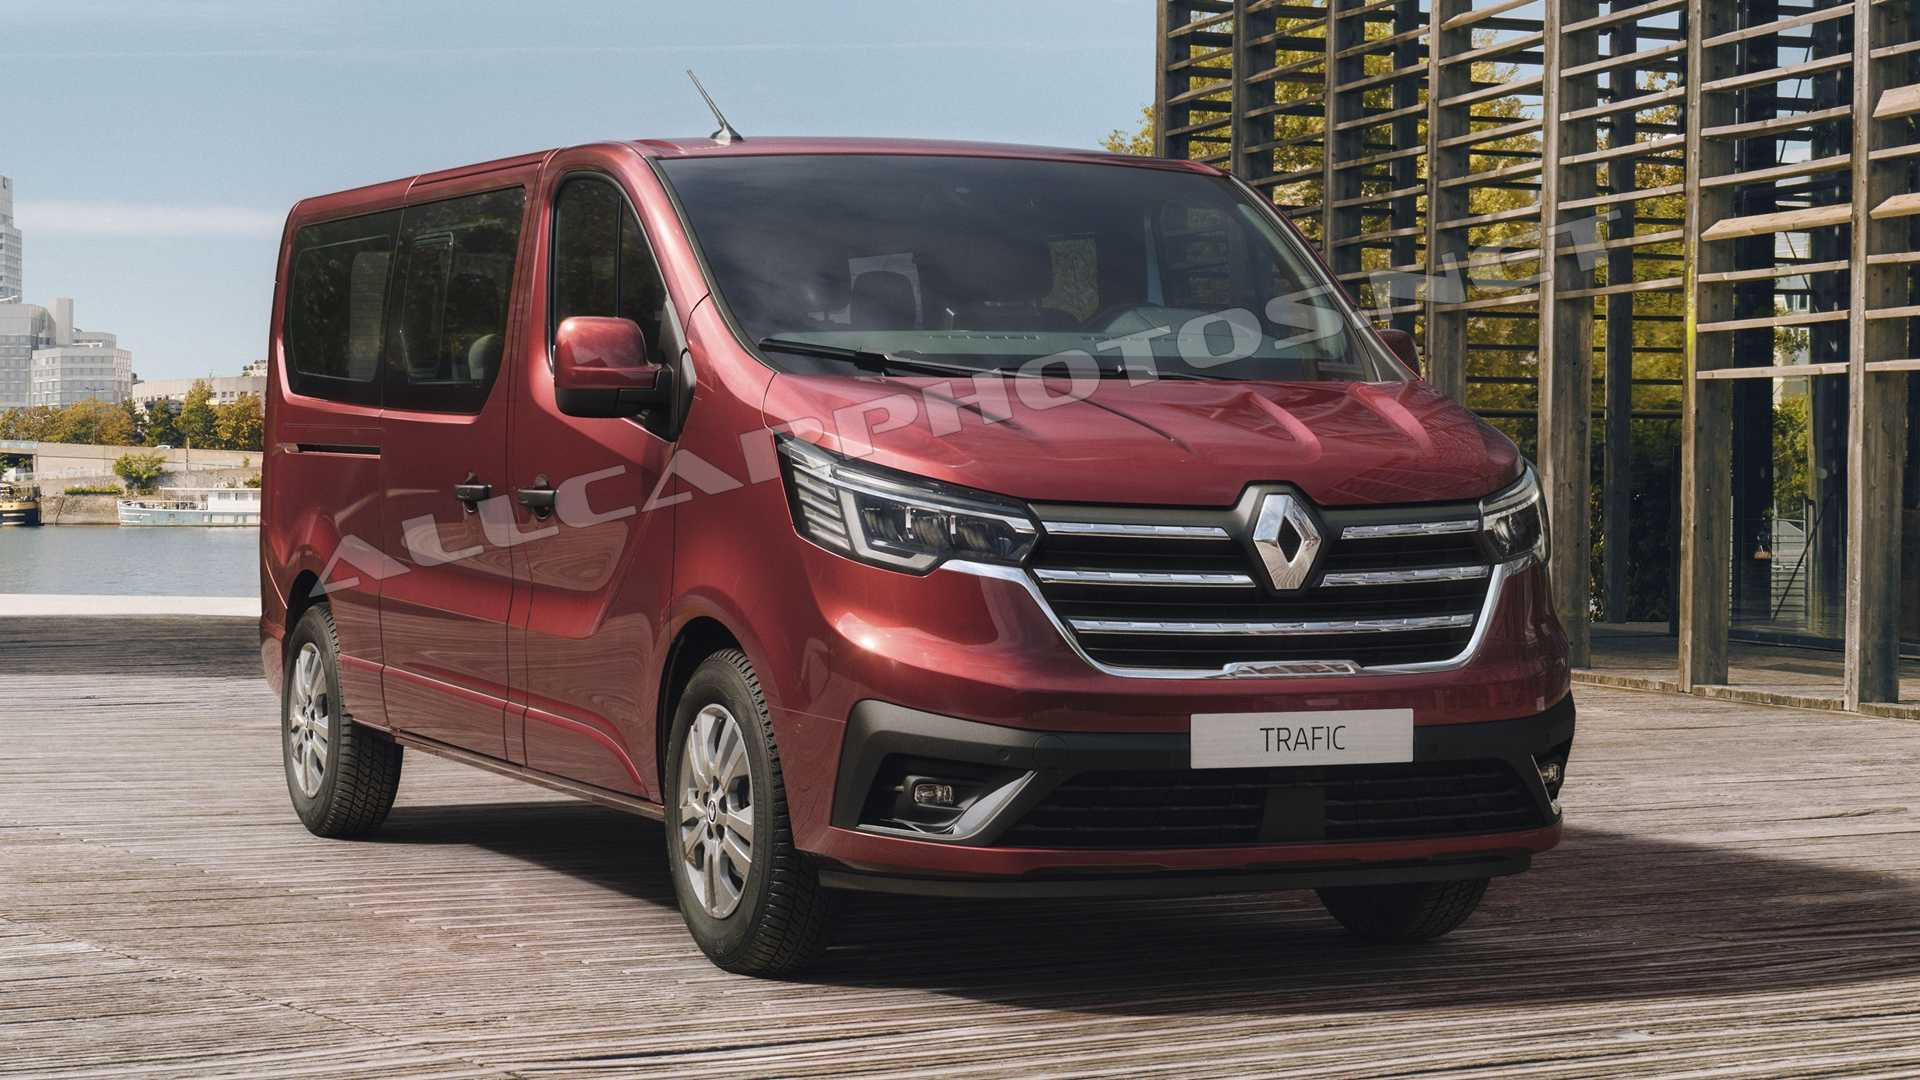 Foto de Renault Trafic 2021: It was debuts with its renewed face